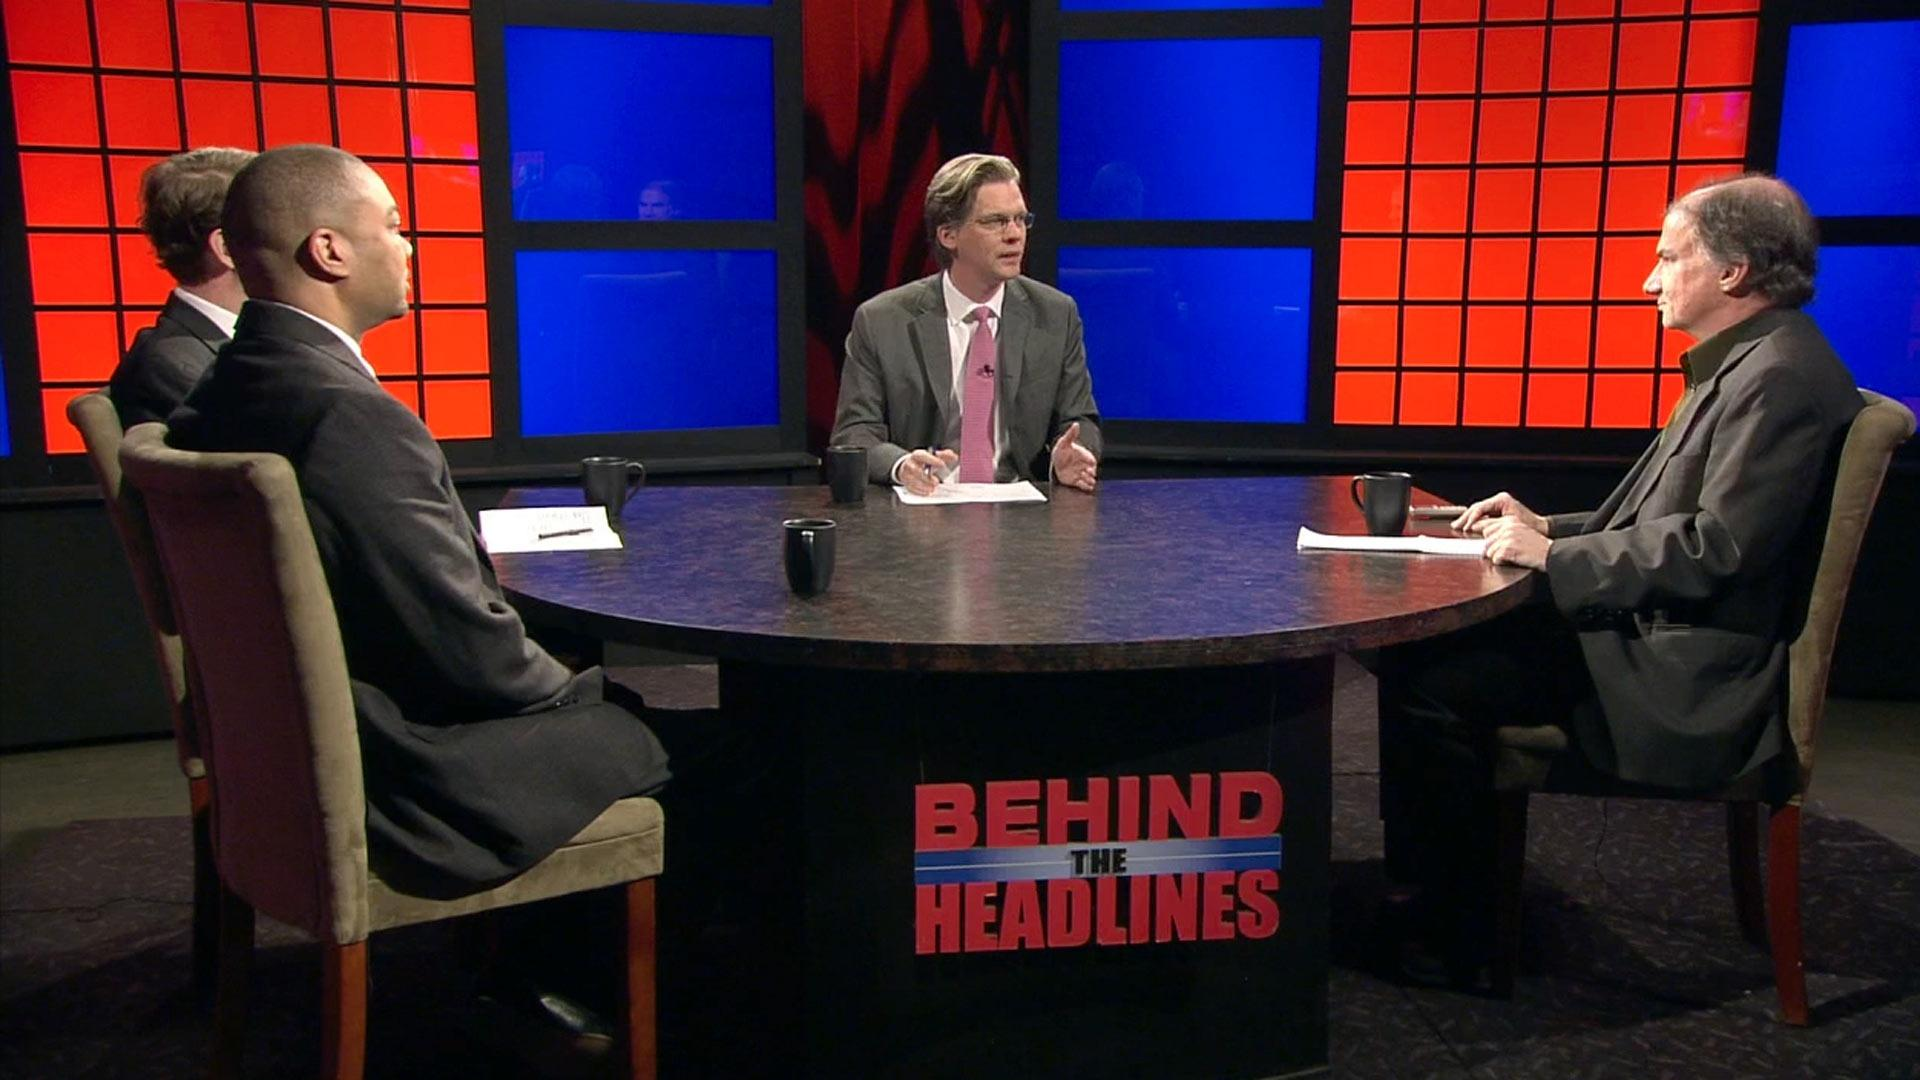 behind the headlines Kcpw and the salt lake tribune present a fresh way for utahns to process the headlines behind the headlines, a live weekly broadcast, examines the week's top local stories through the eyes of reporters on the beat.